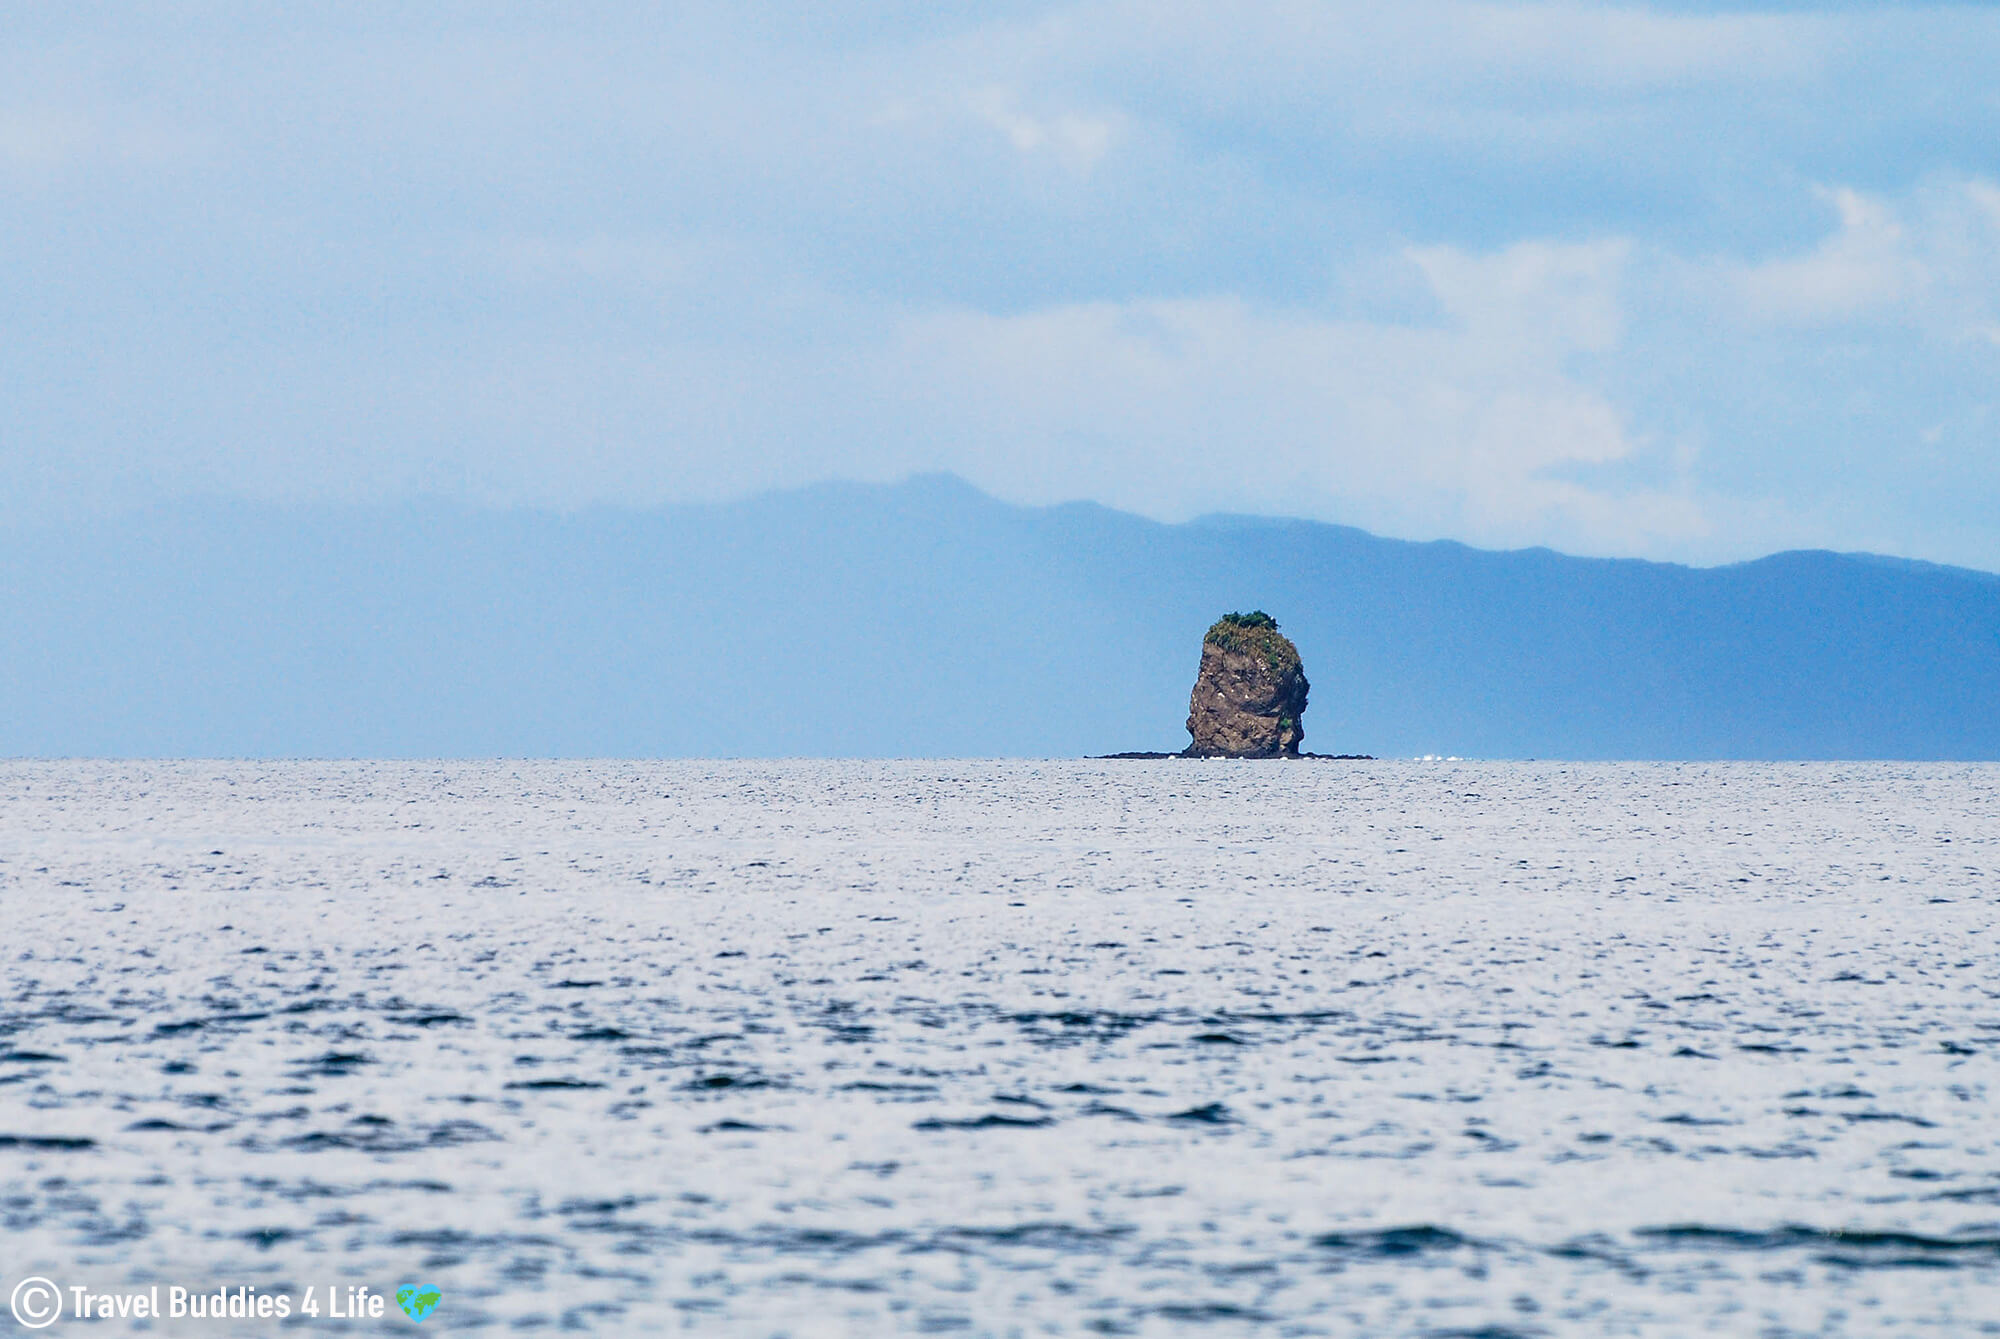 Bat Island Rock Formation At A Distance In Costa Rica, Central America